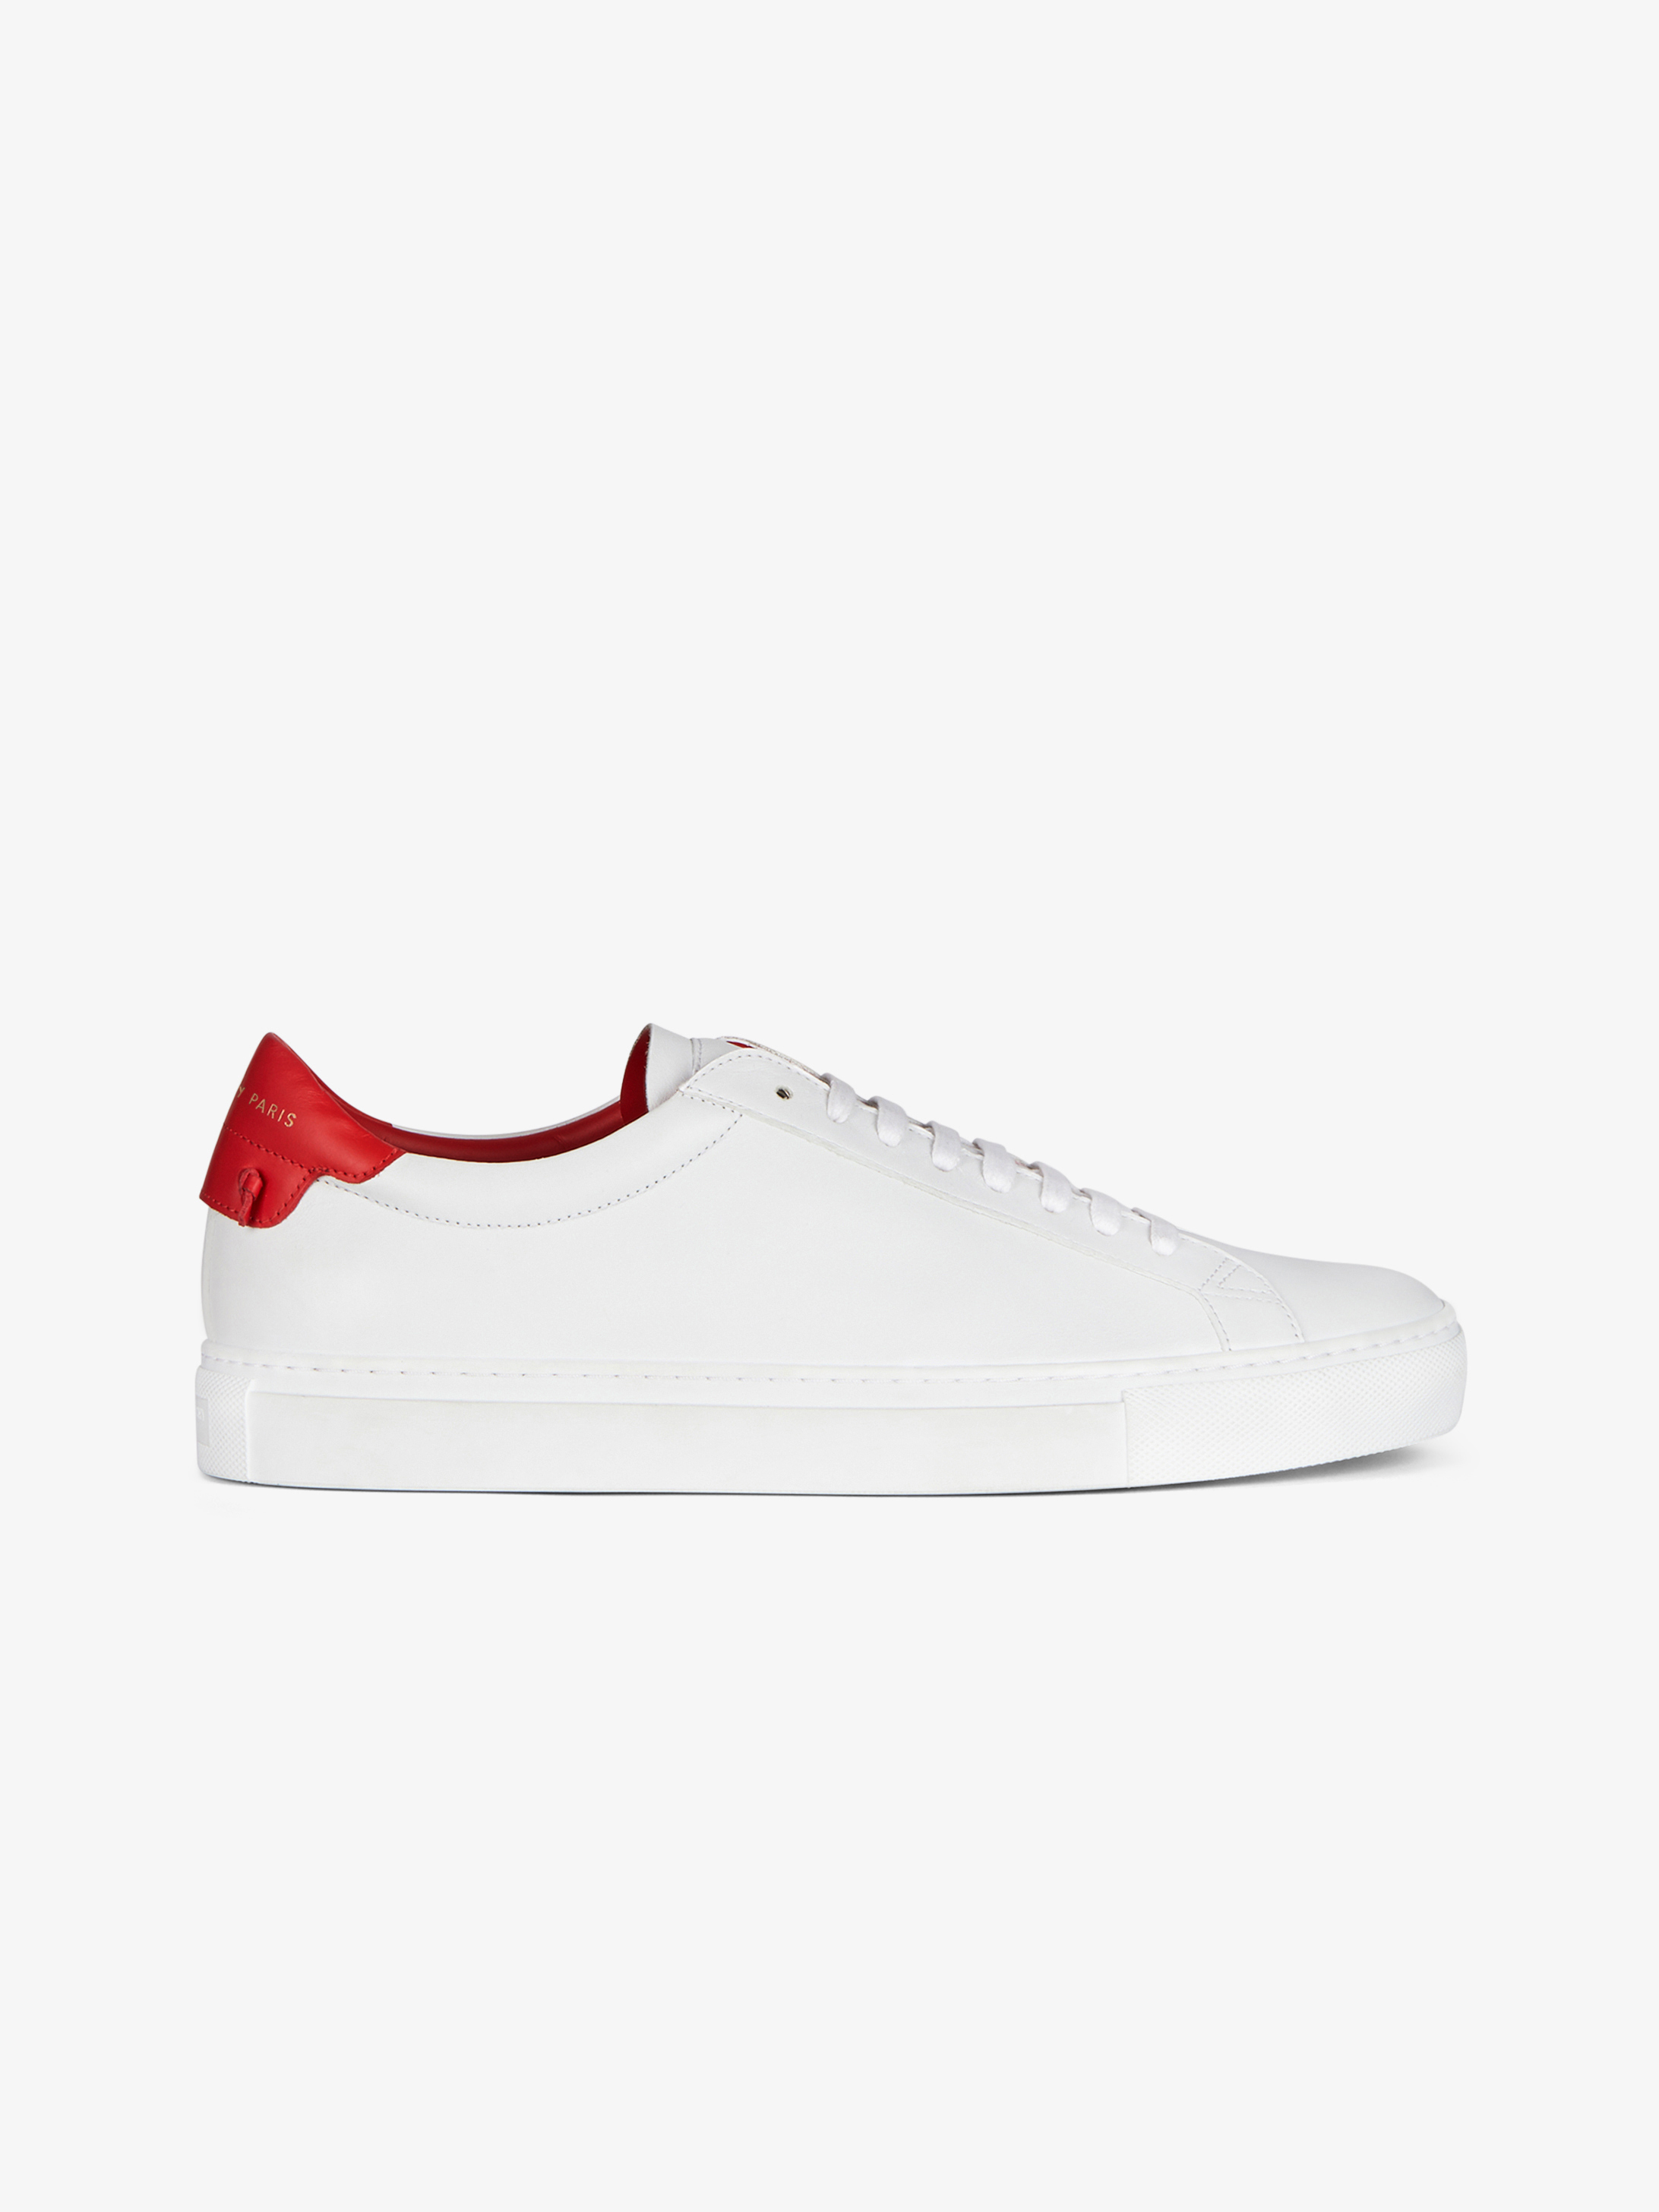 Sneakers in two tone matte leather